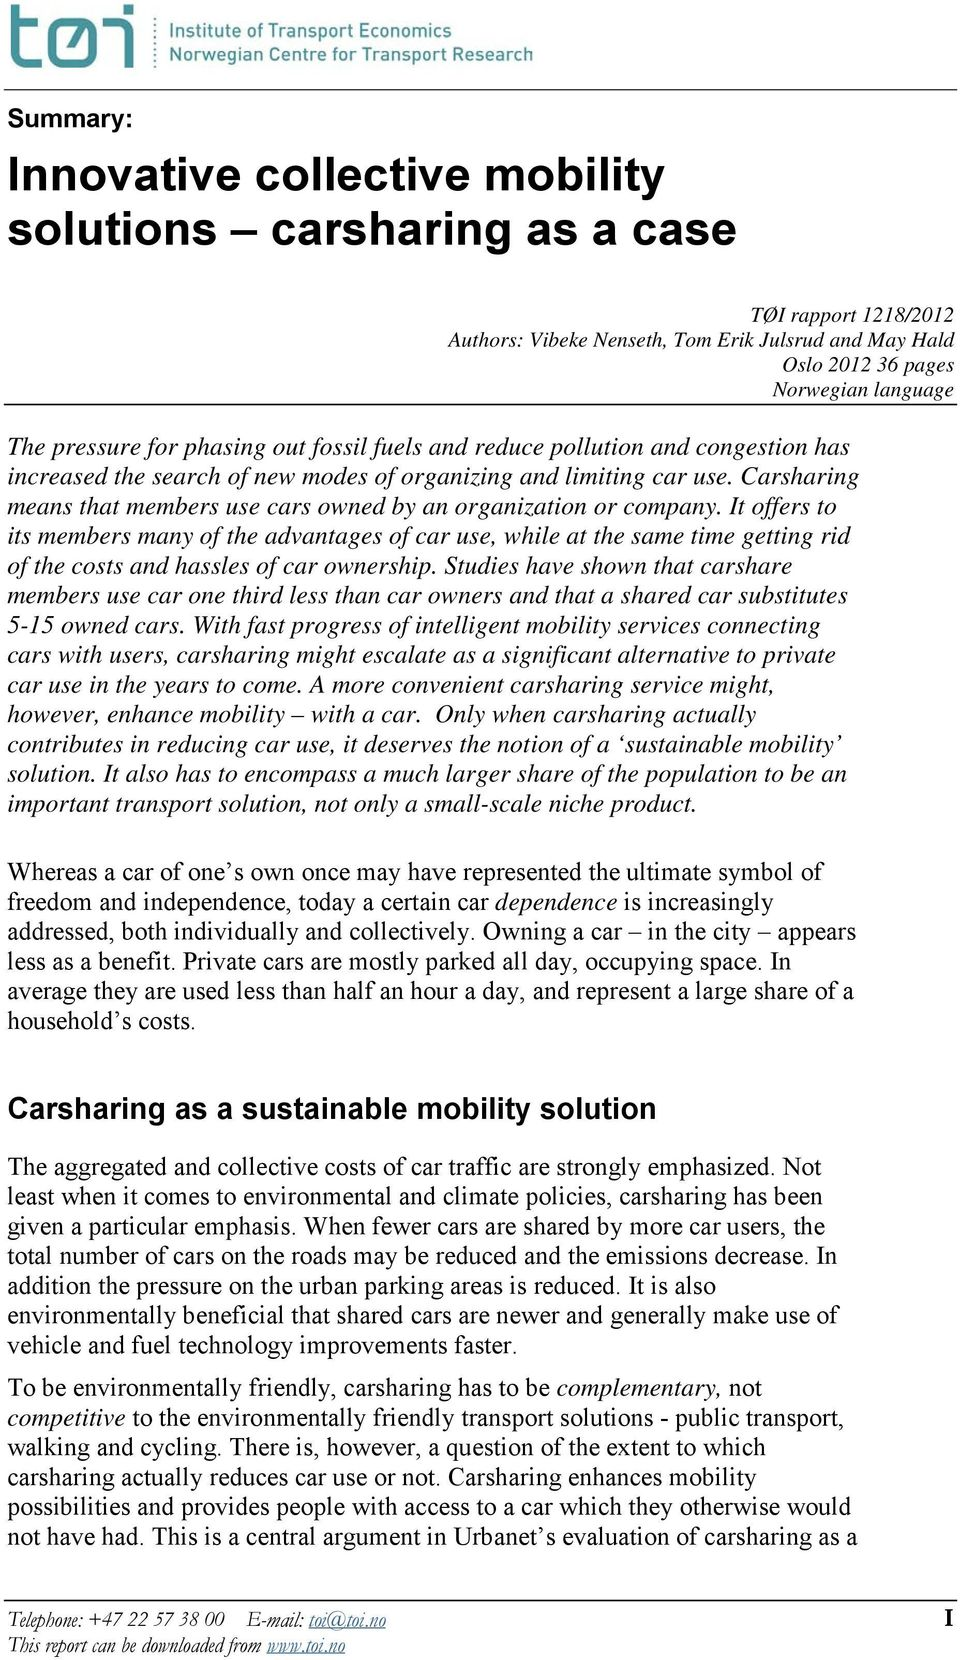 Carsharing means that members use cars owned by an organization or company.